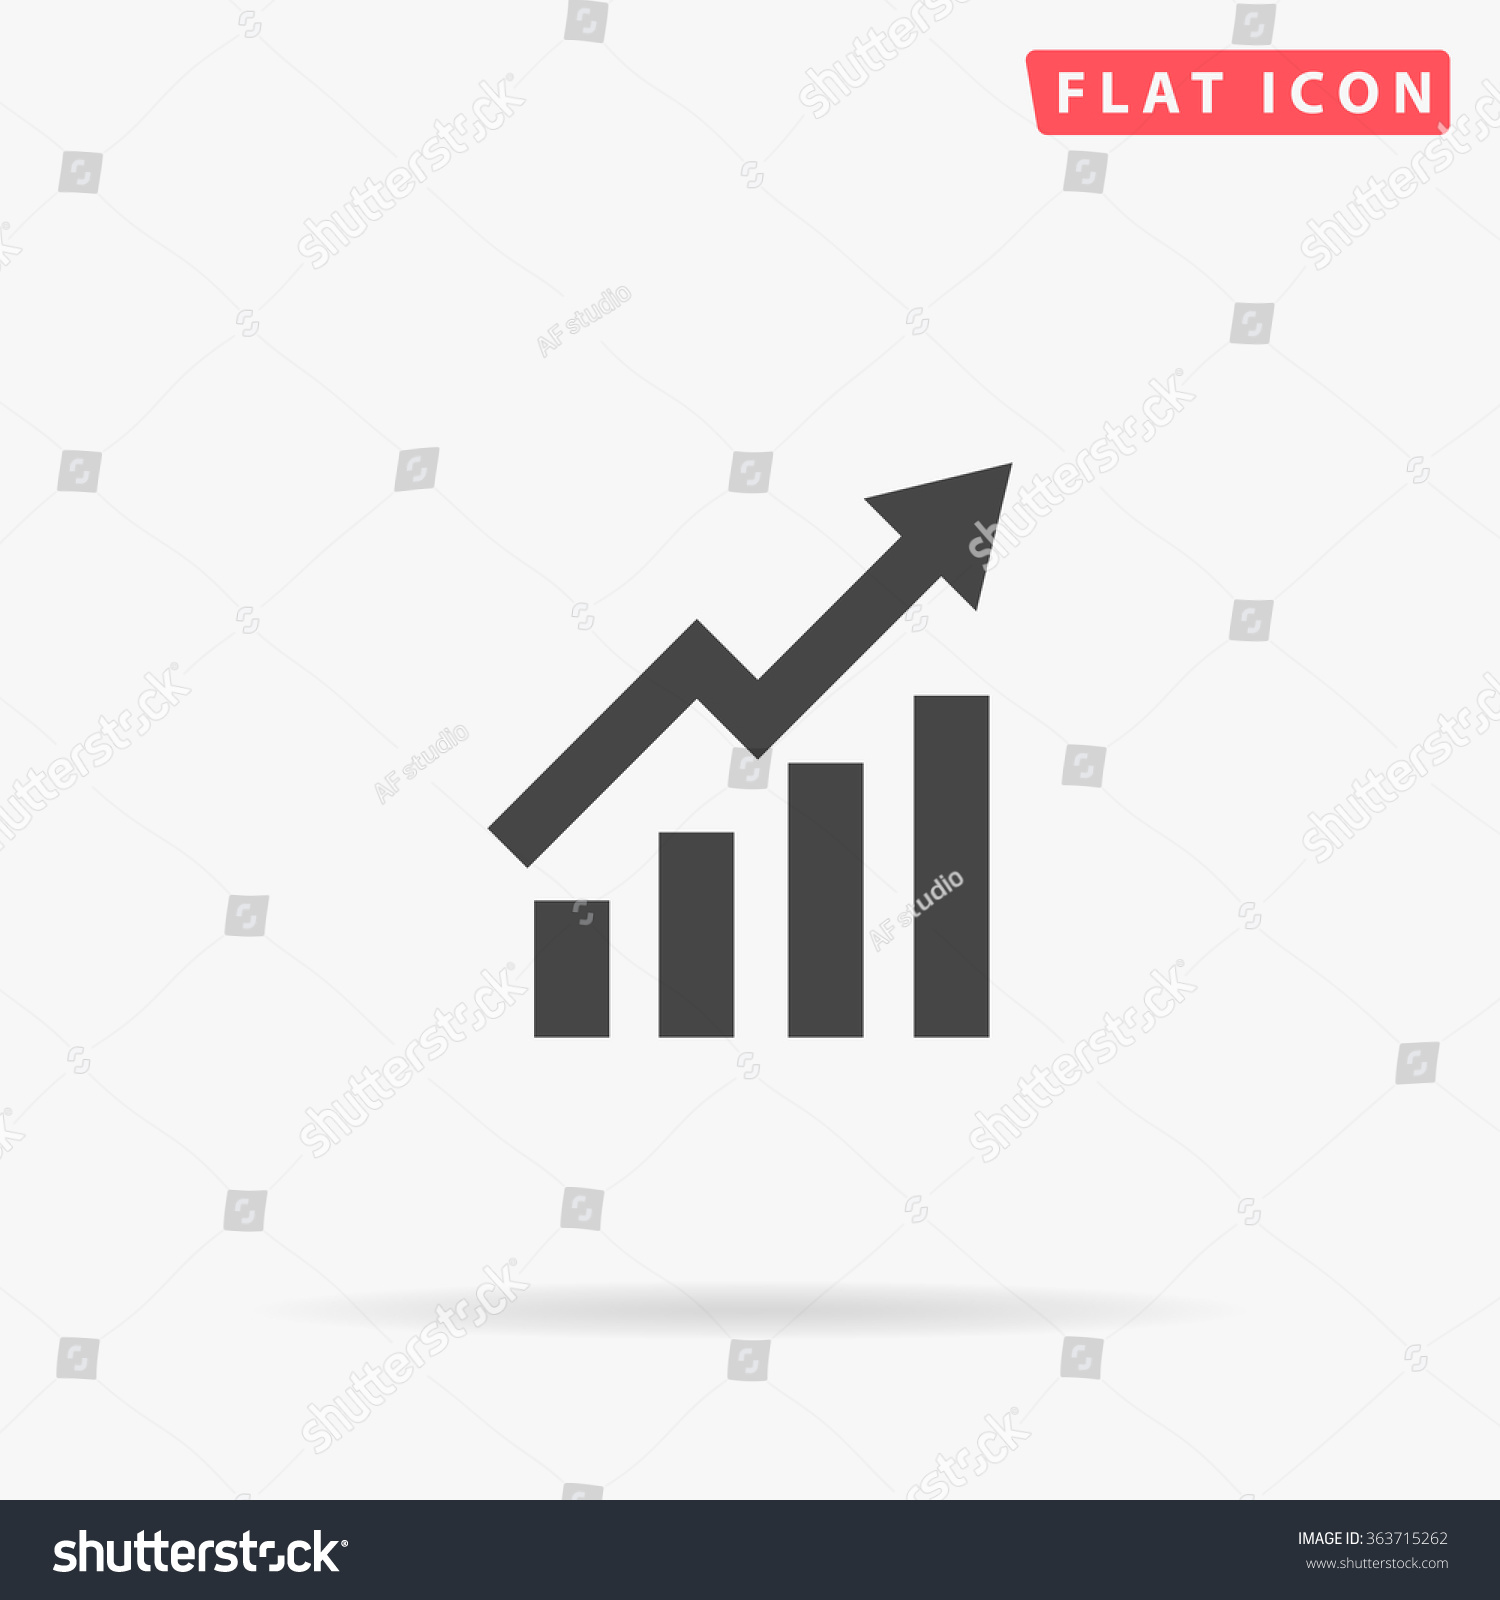 Graphic Icon Vector Stock Vector 363715262 - Shutterstock